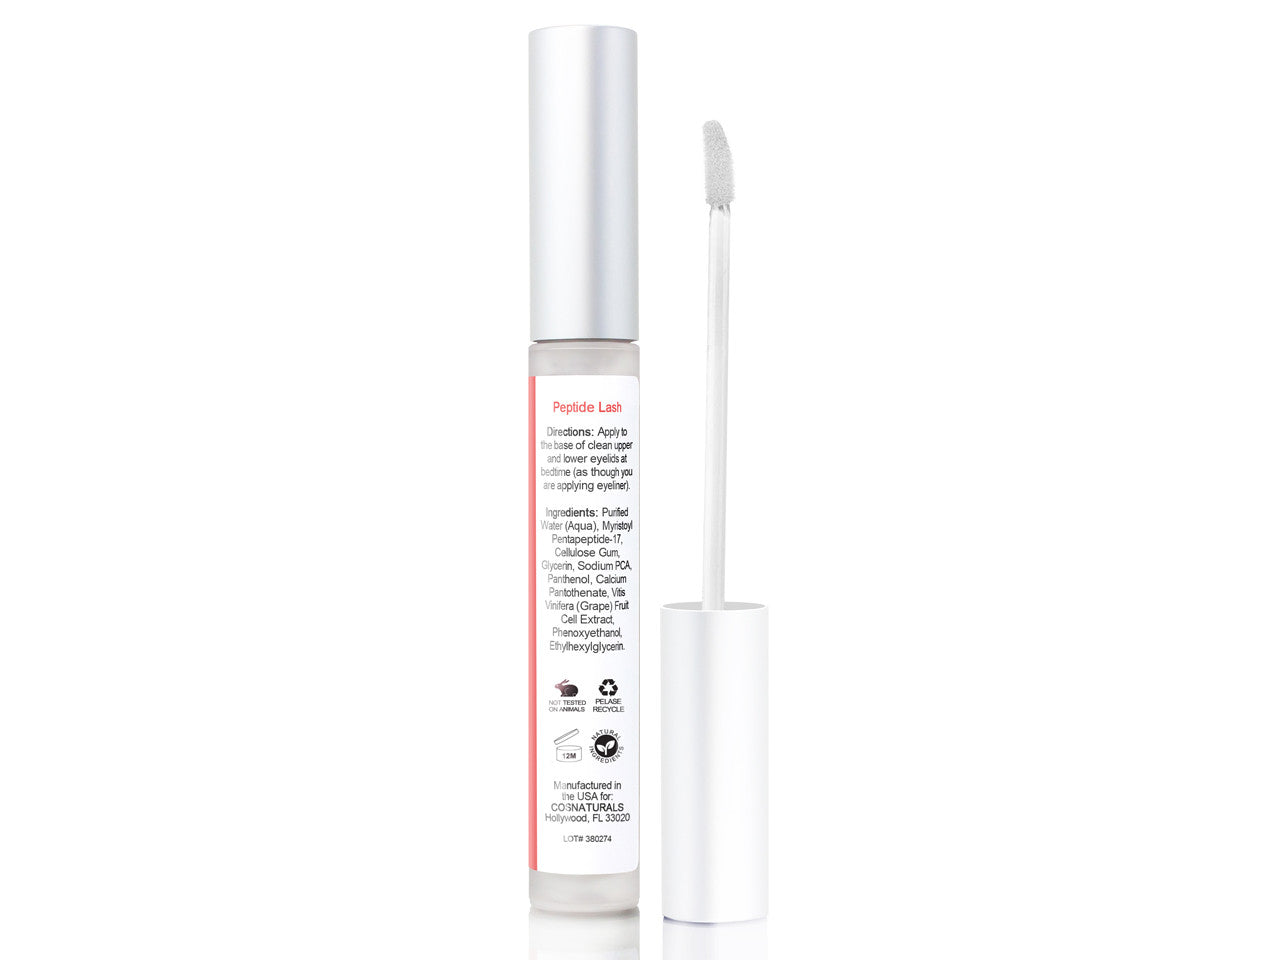 Eyelash Growth Serum PEPTIDE LASH Natural Regrowth Plant Stem Cells Enhancing Treatment For Longer Fuller Eyelashes Thicker Eyebrows With Pentapeptide-17 Panthenol, 5ml 0.16 Oz